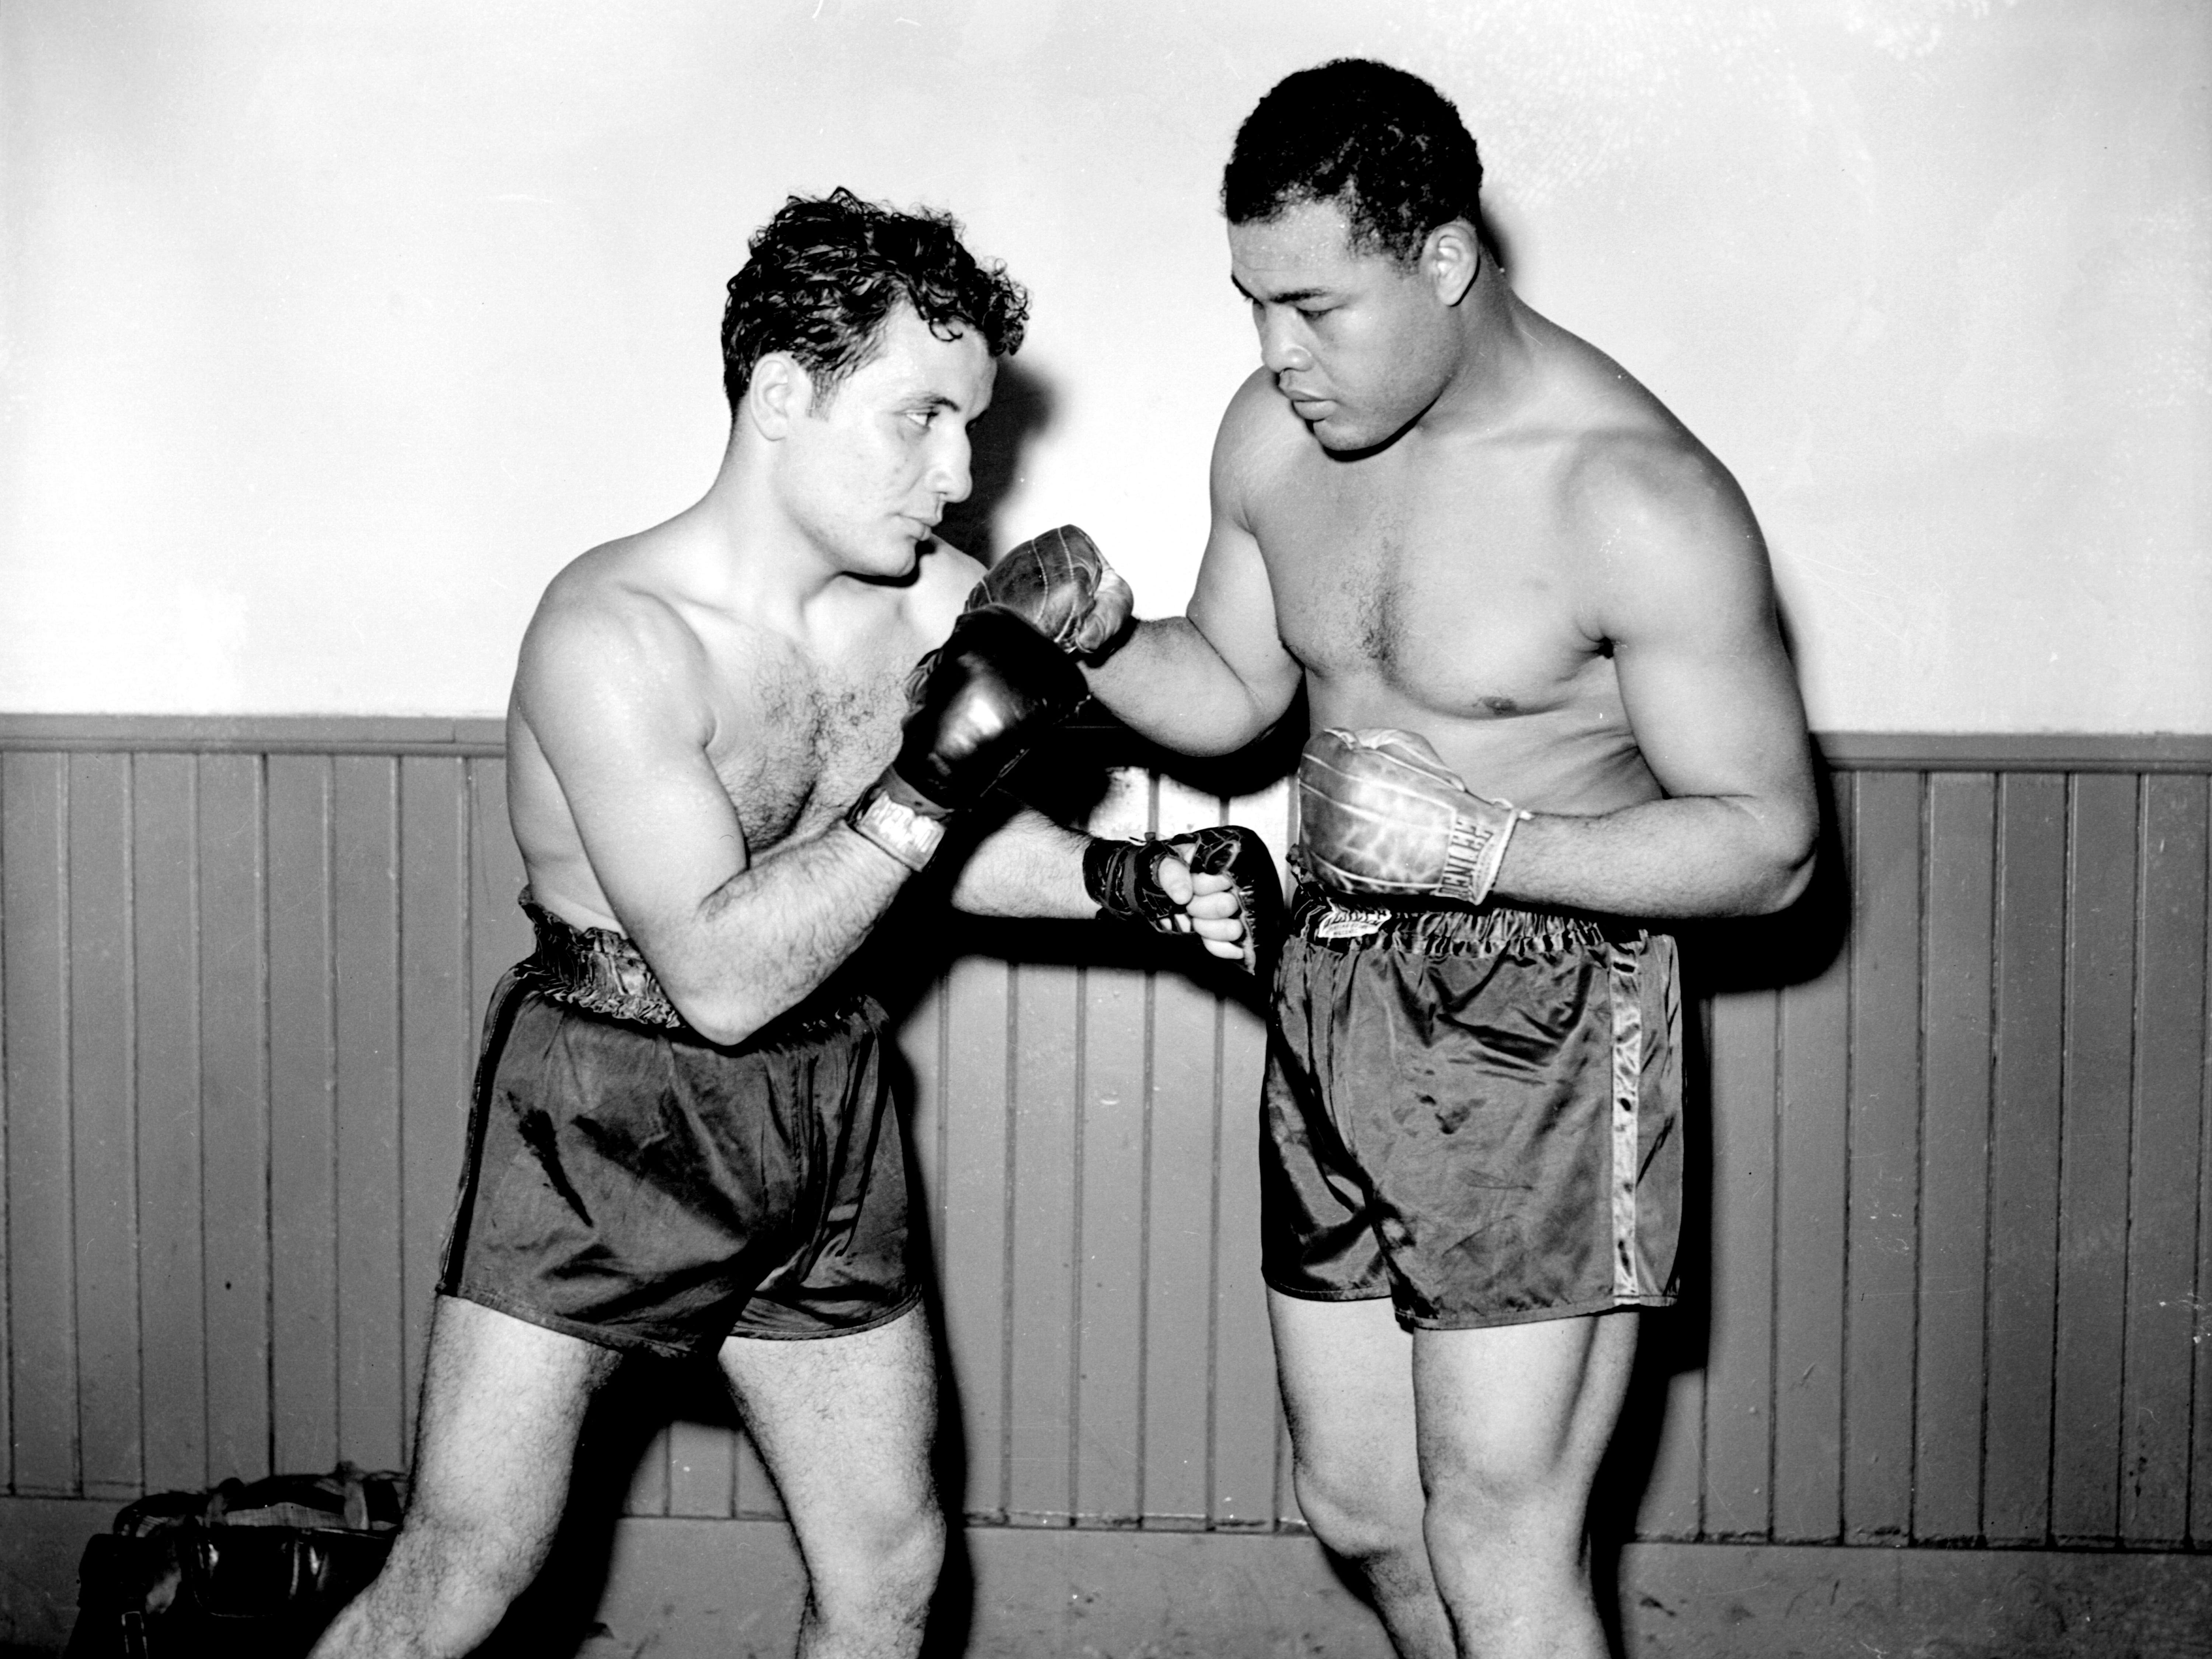 Raging Bull meets Brown Bomber: Middleweight boxing champion Jake La Motta poses with heavyweight champ Joe Louis. On Nov. 3, 1944, they both fought at Olympia Stadium, with Louis knocking out John Denson and La Motta earning a TKO over George Kochan.